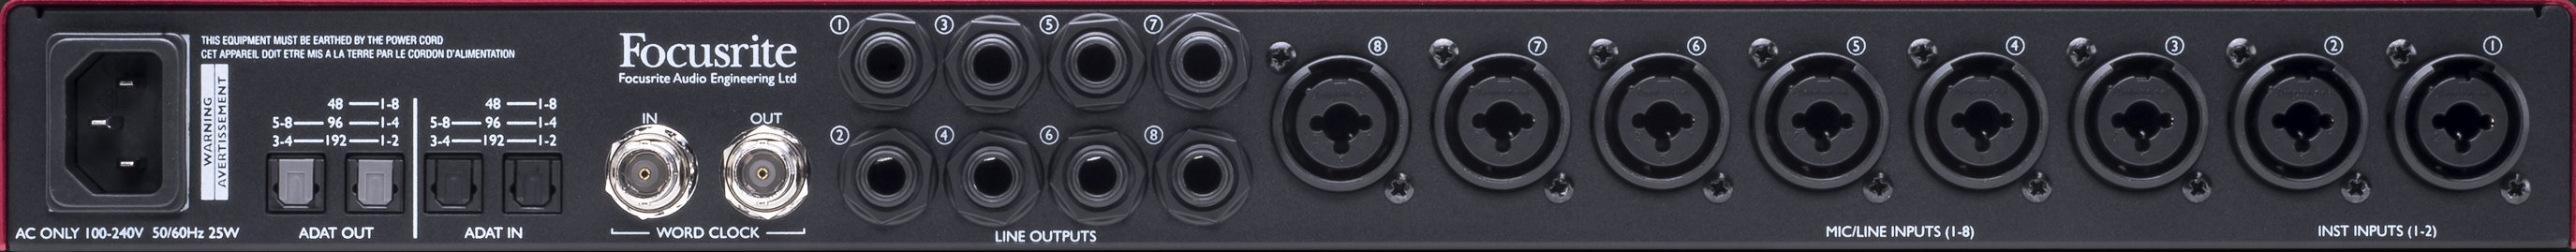 8-Channel Mic Pre with A-D/D-A Conversion and Analogue Compression